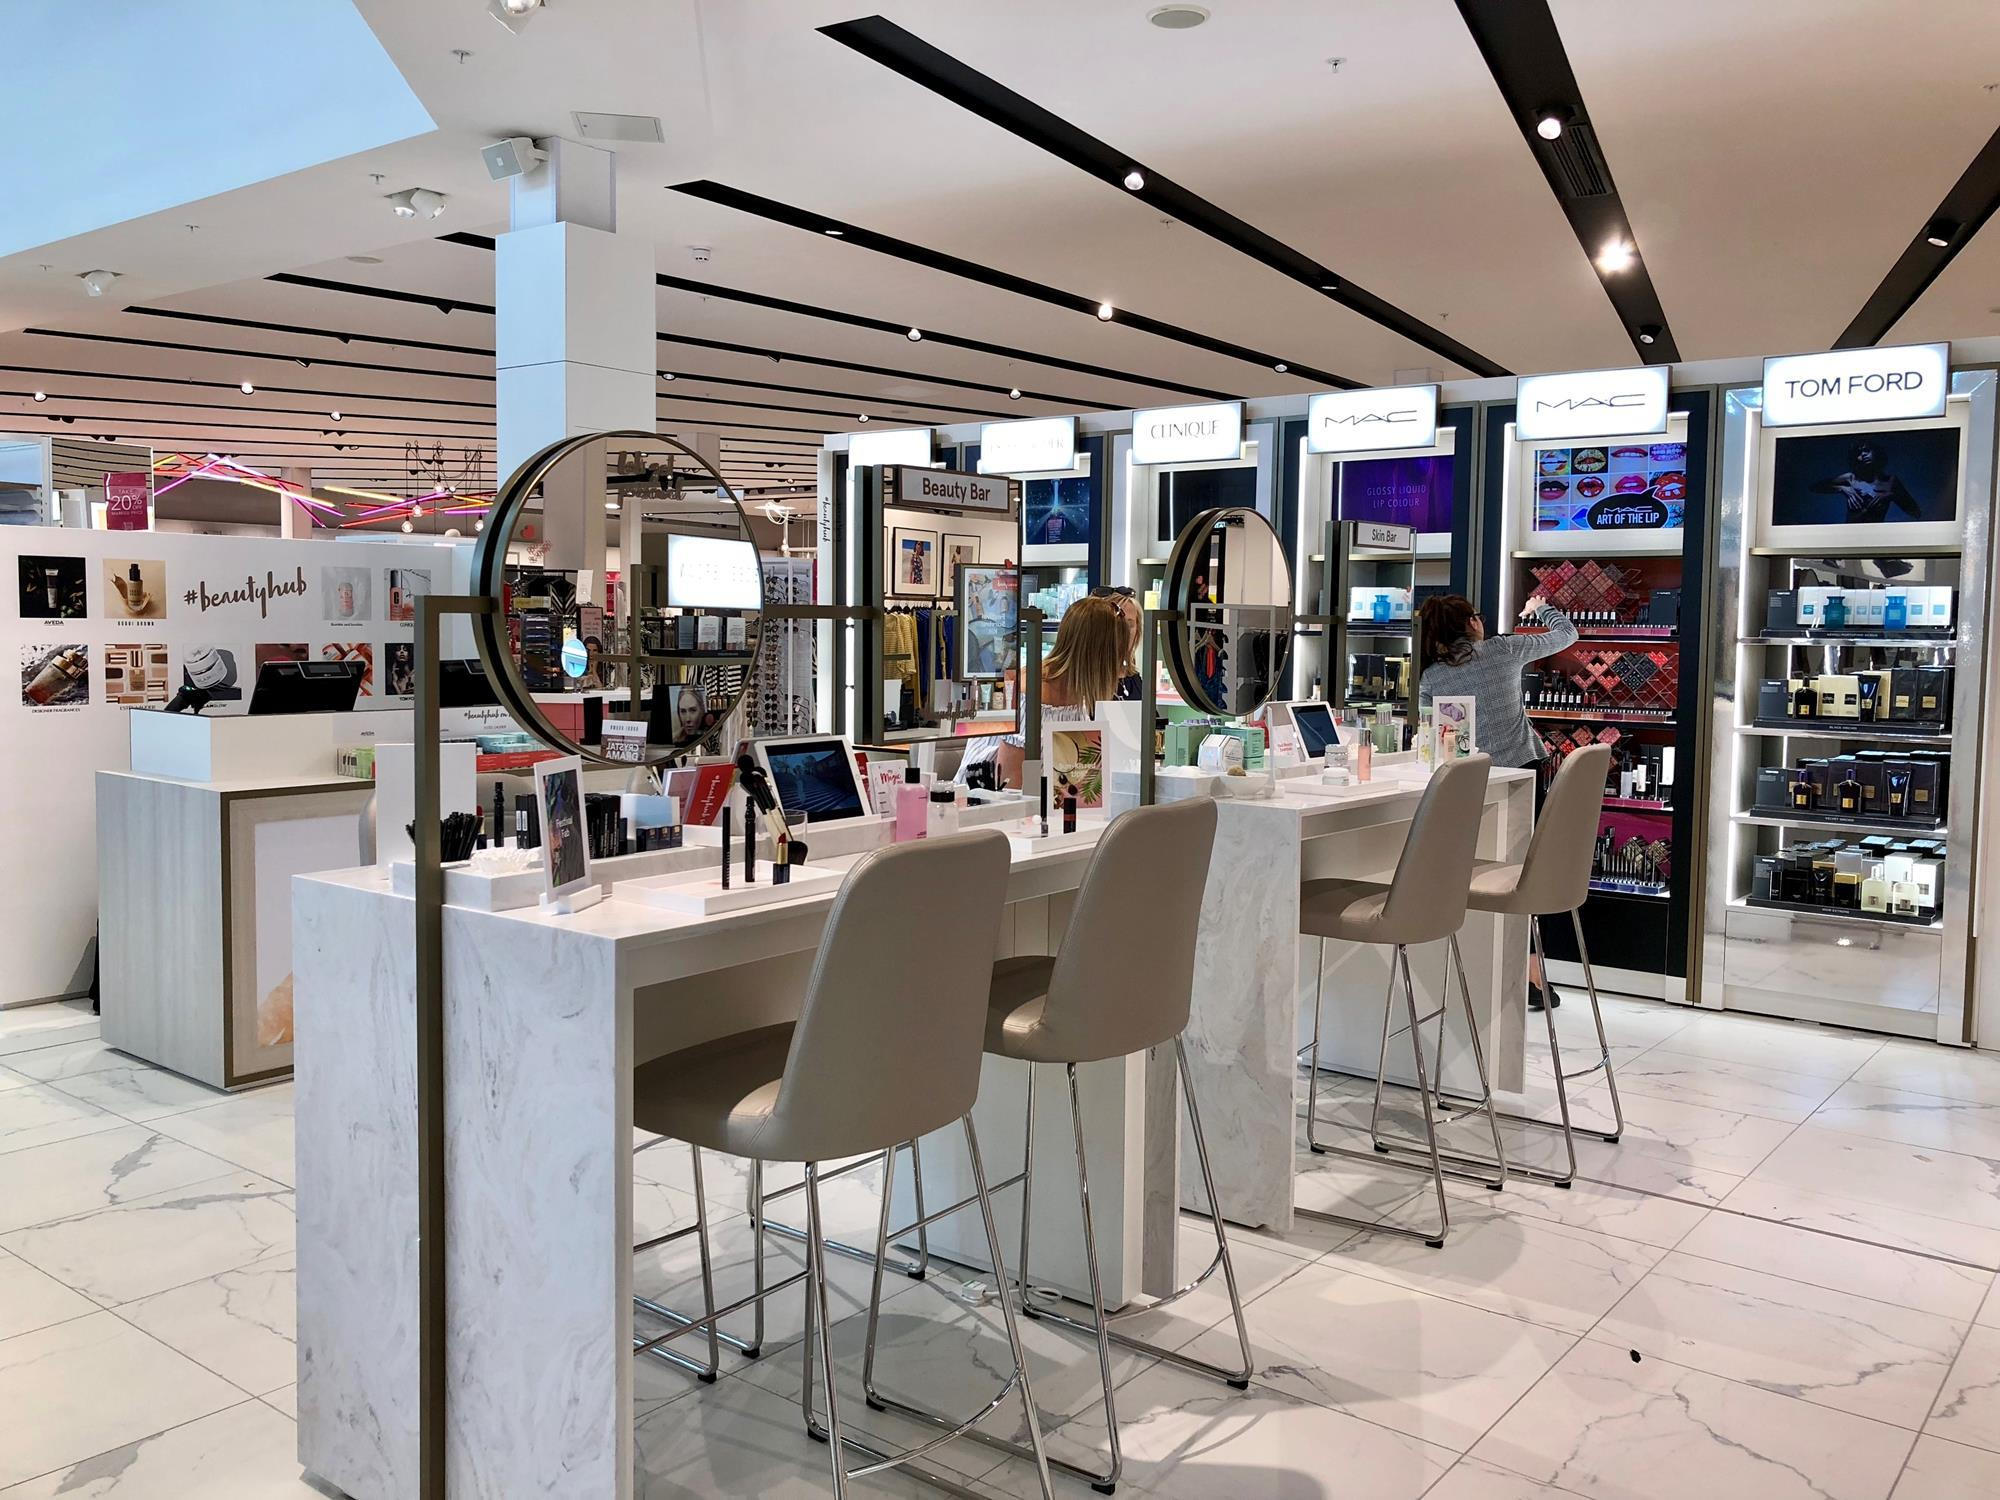 7279e98490d In pictures: Debenhams and Estee Lauder's new beauty hub | News | Retail  Week